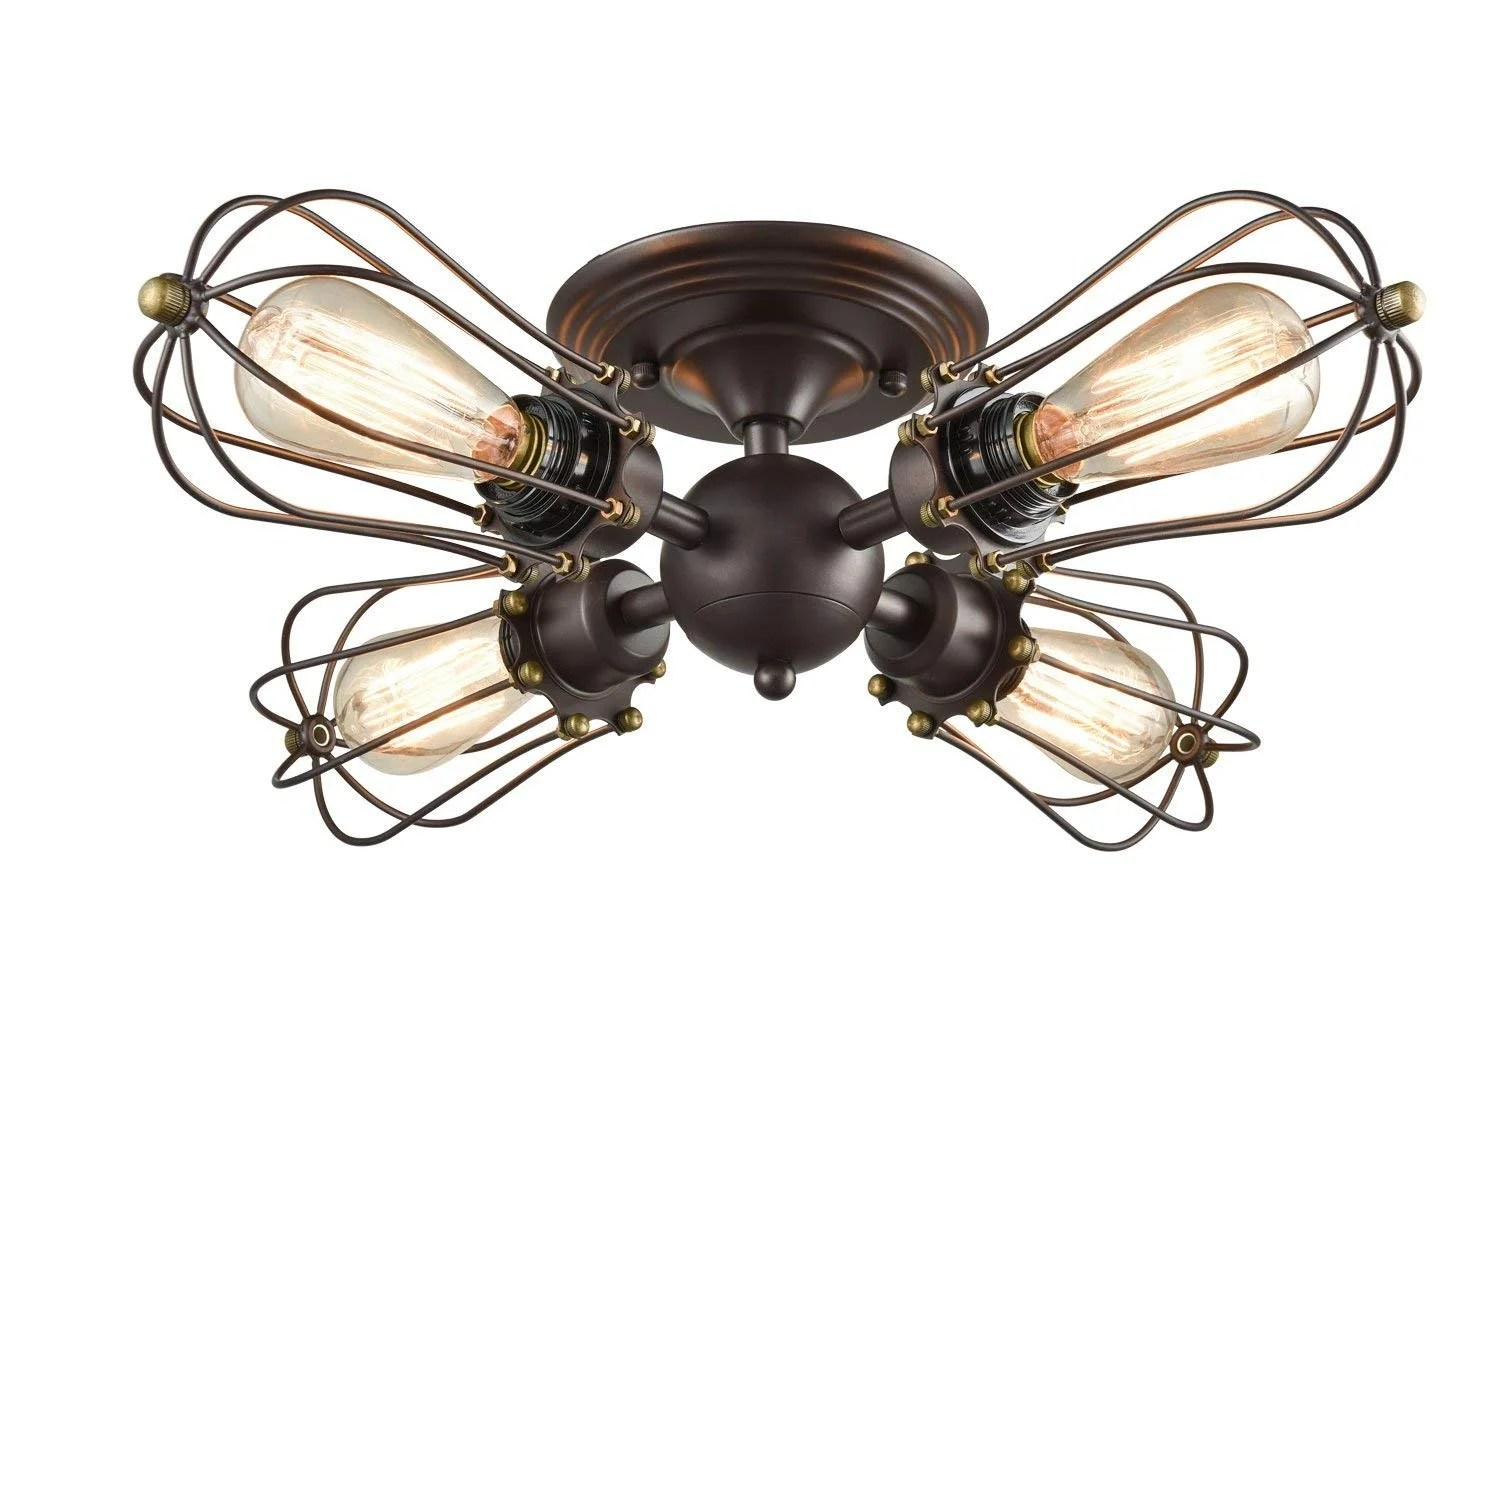 Ceiling Light Near Me 4 Light Oil Rubbed Seme Flush Mount Vintage Industrial Wire Cage Ceiling Light Antique Rust